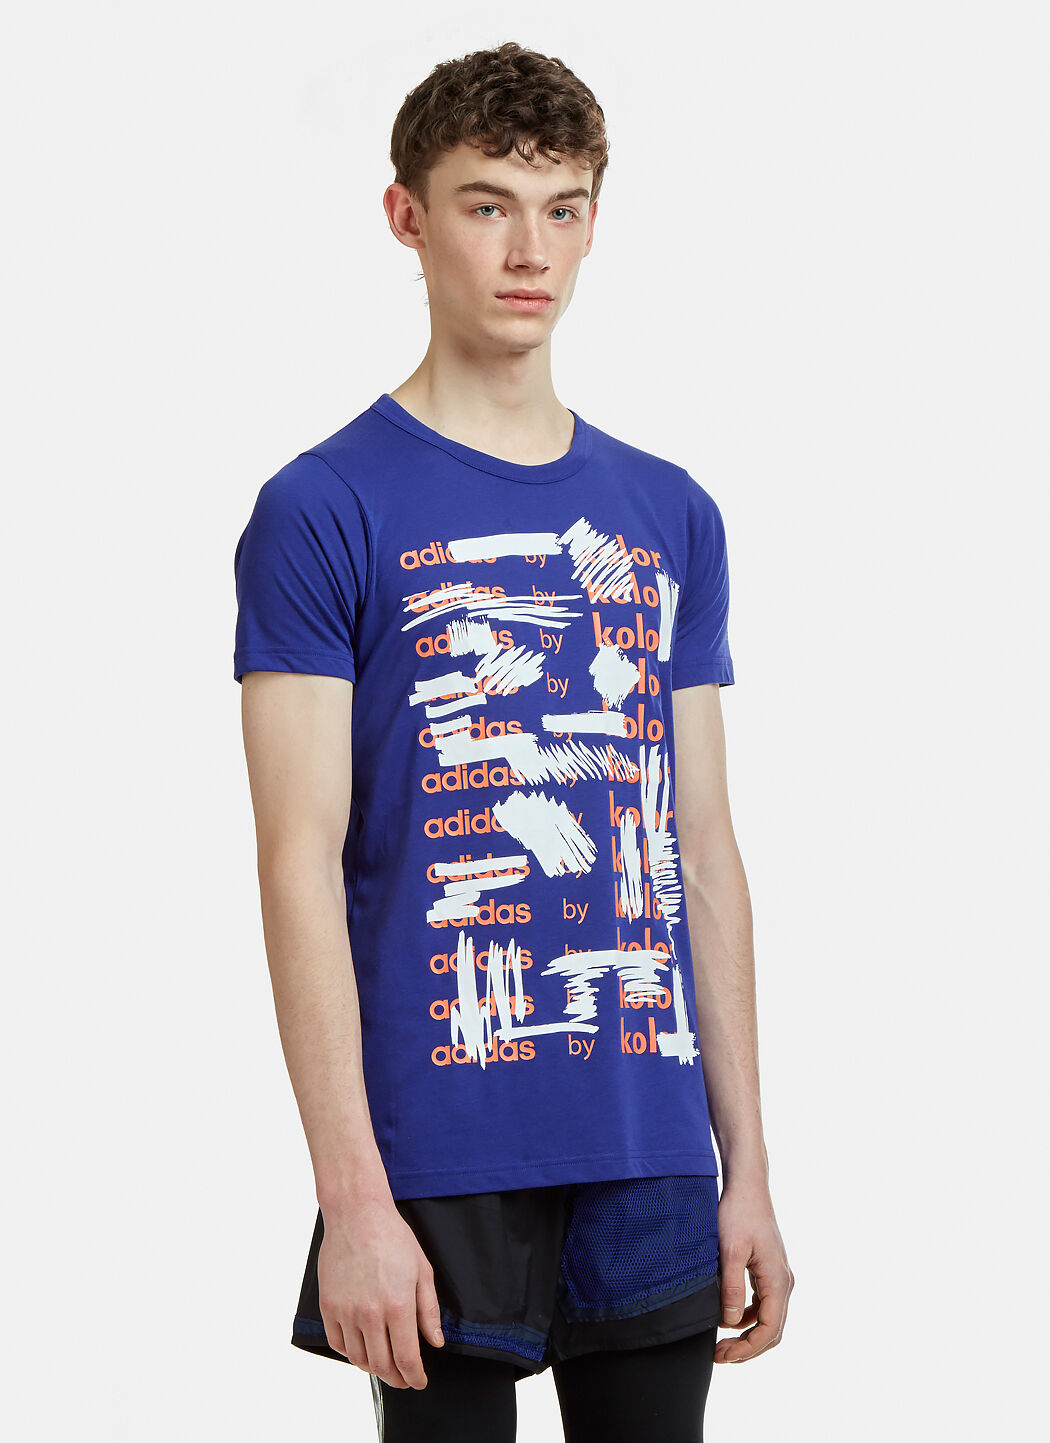 Adidas By Kolor Graphic T Shirt in Purple | LN CC